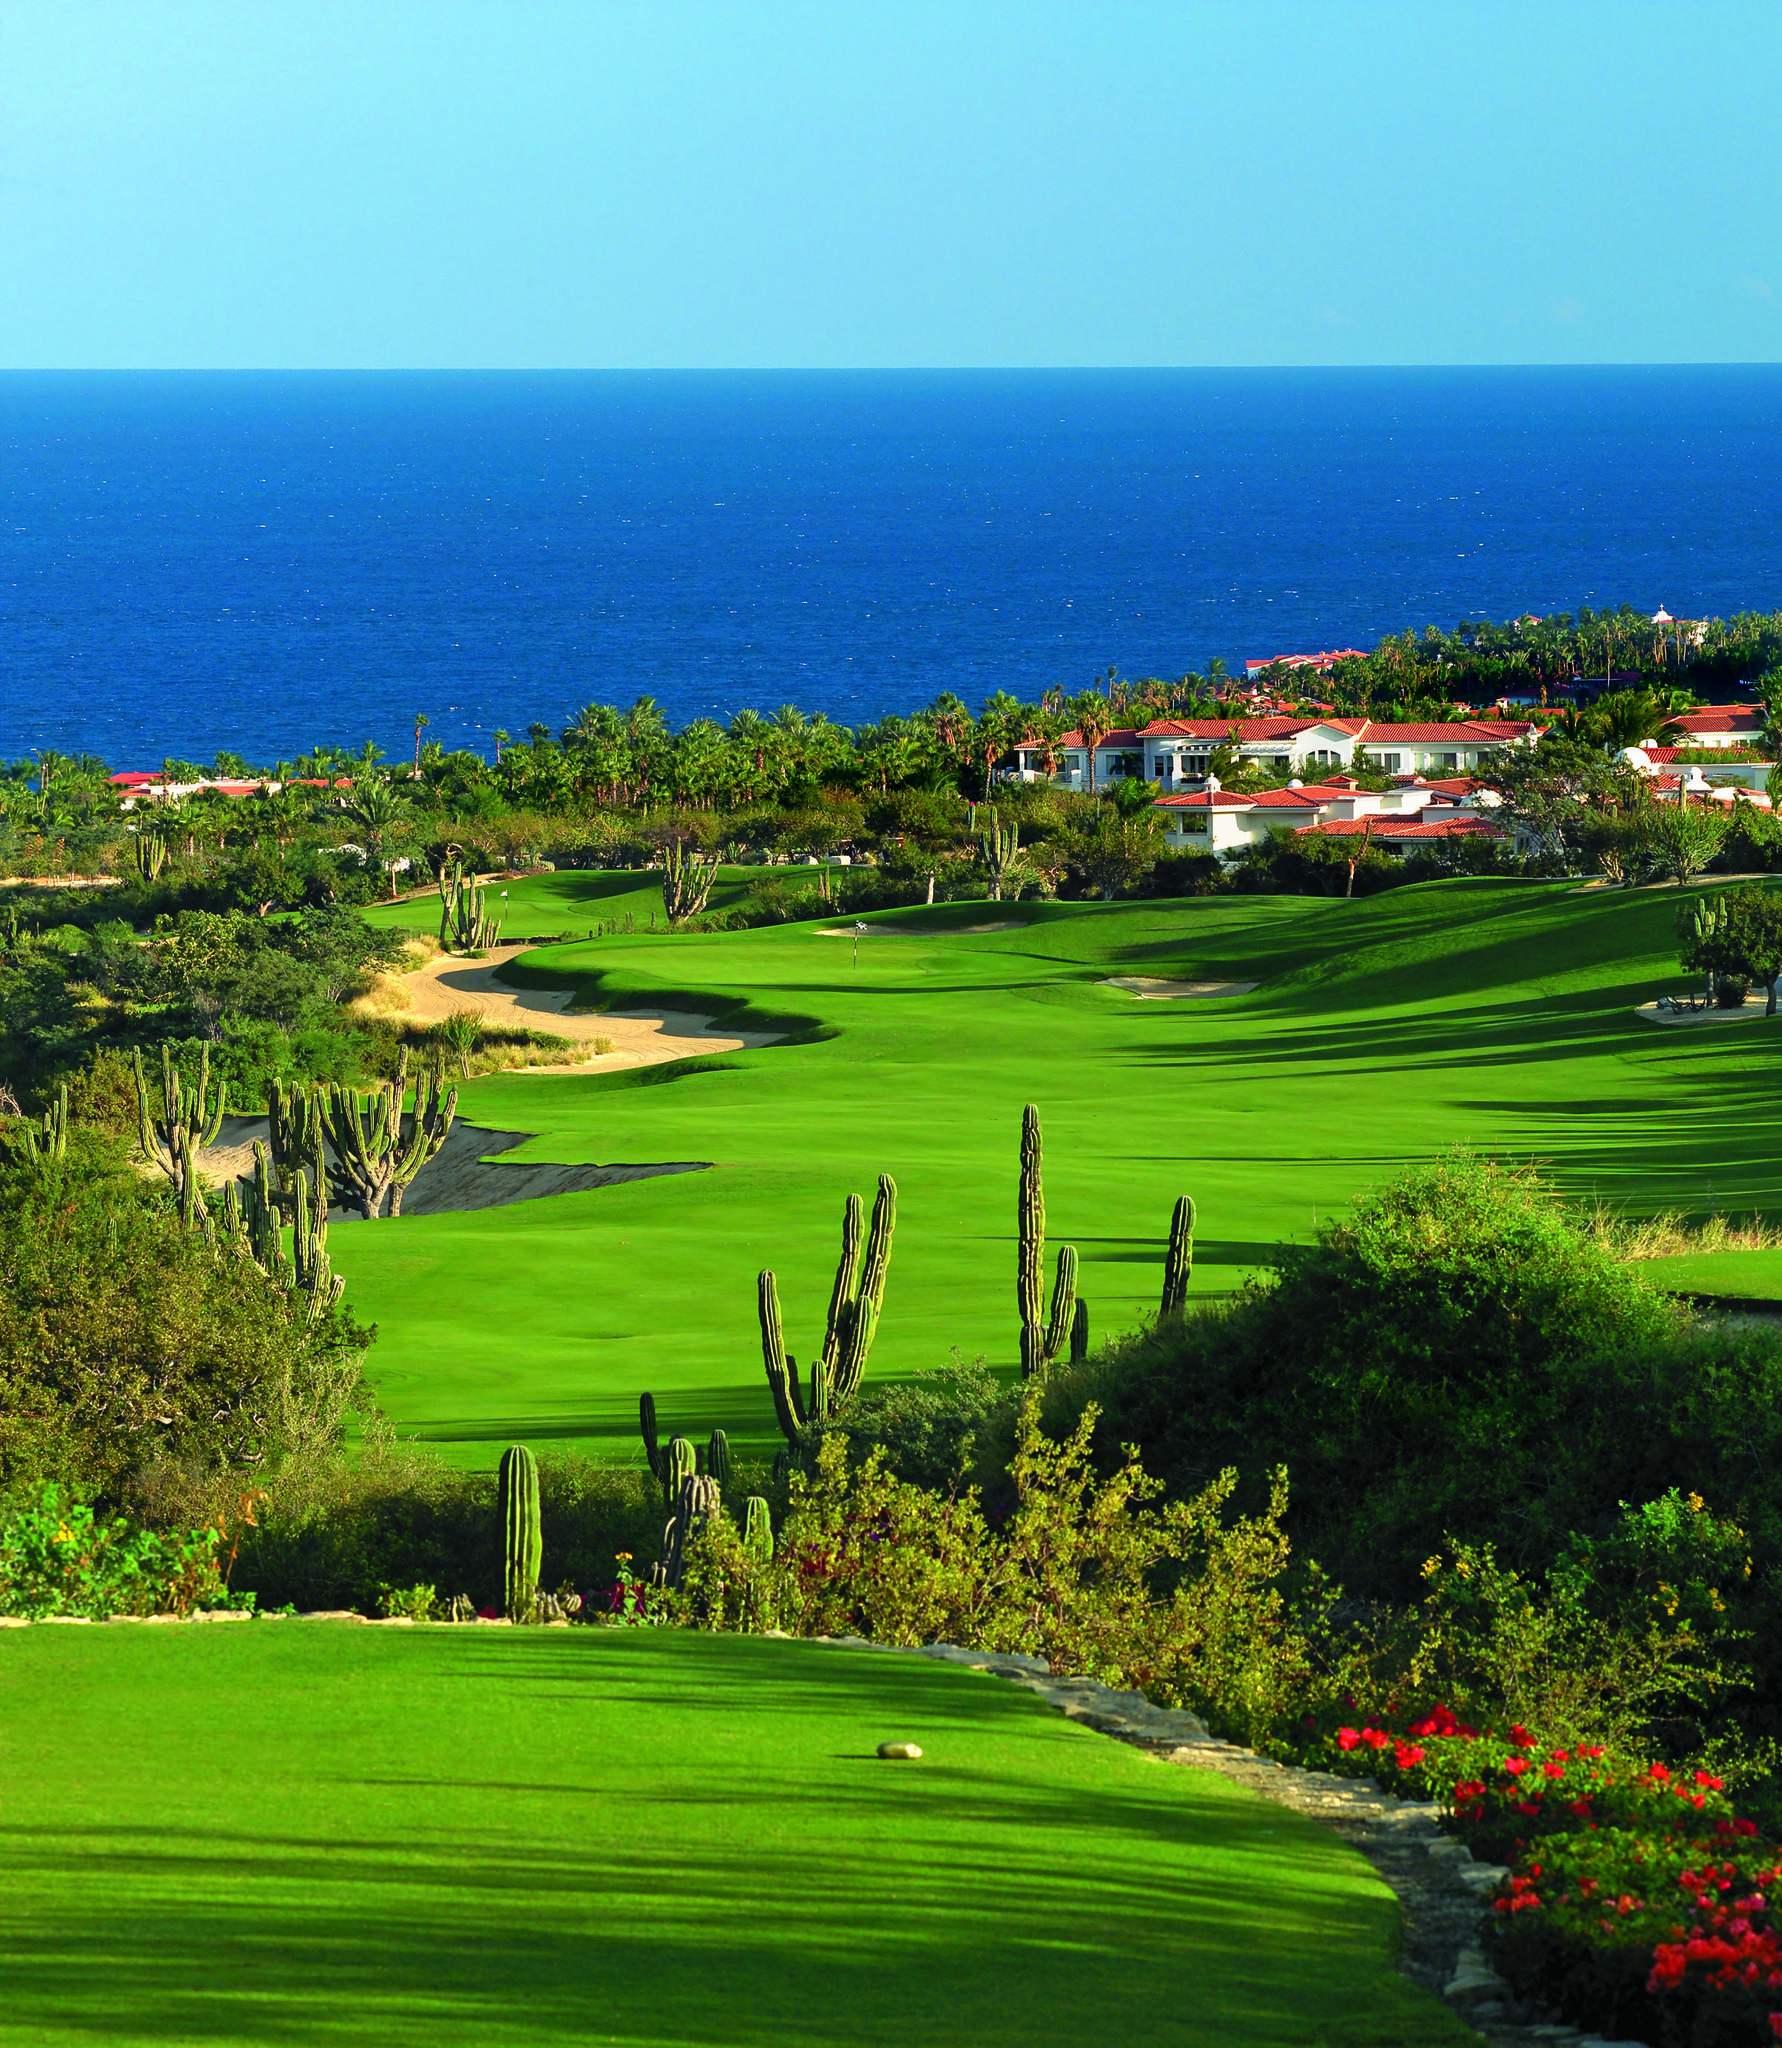 Jack Nicklaus' three nines at the One & Only Palmilla Resort in Los Cabos, Mexico climbs into the desert, then descends back toward the ocean.